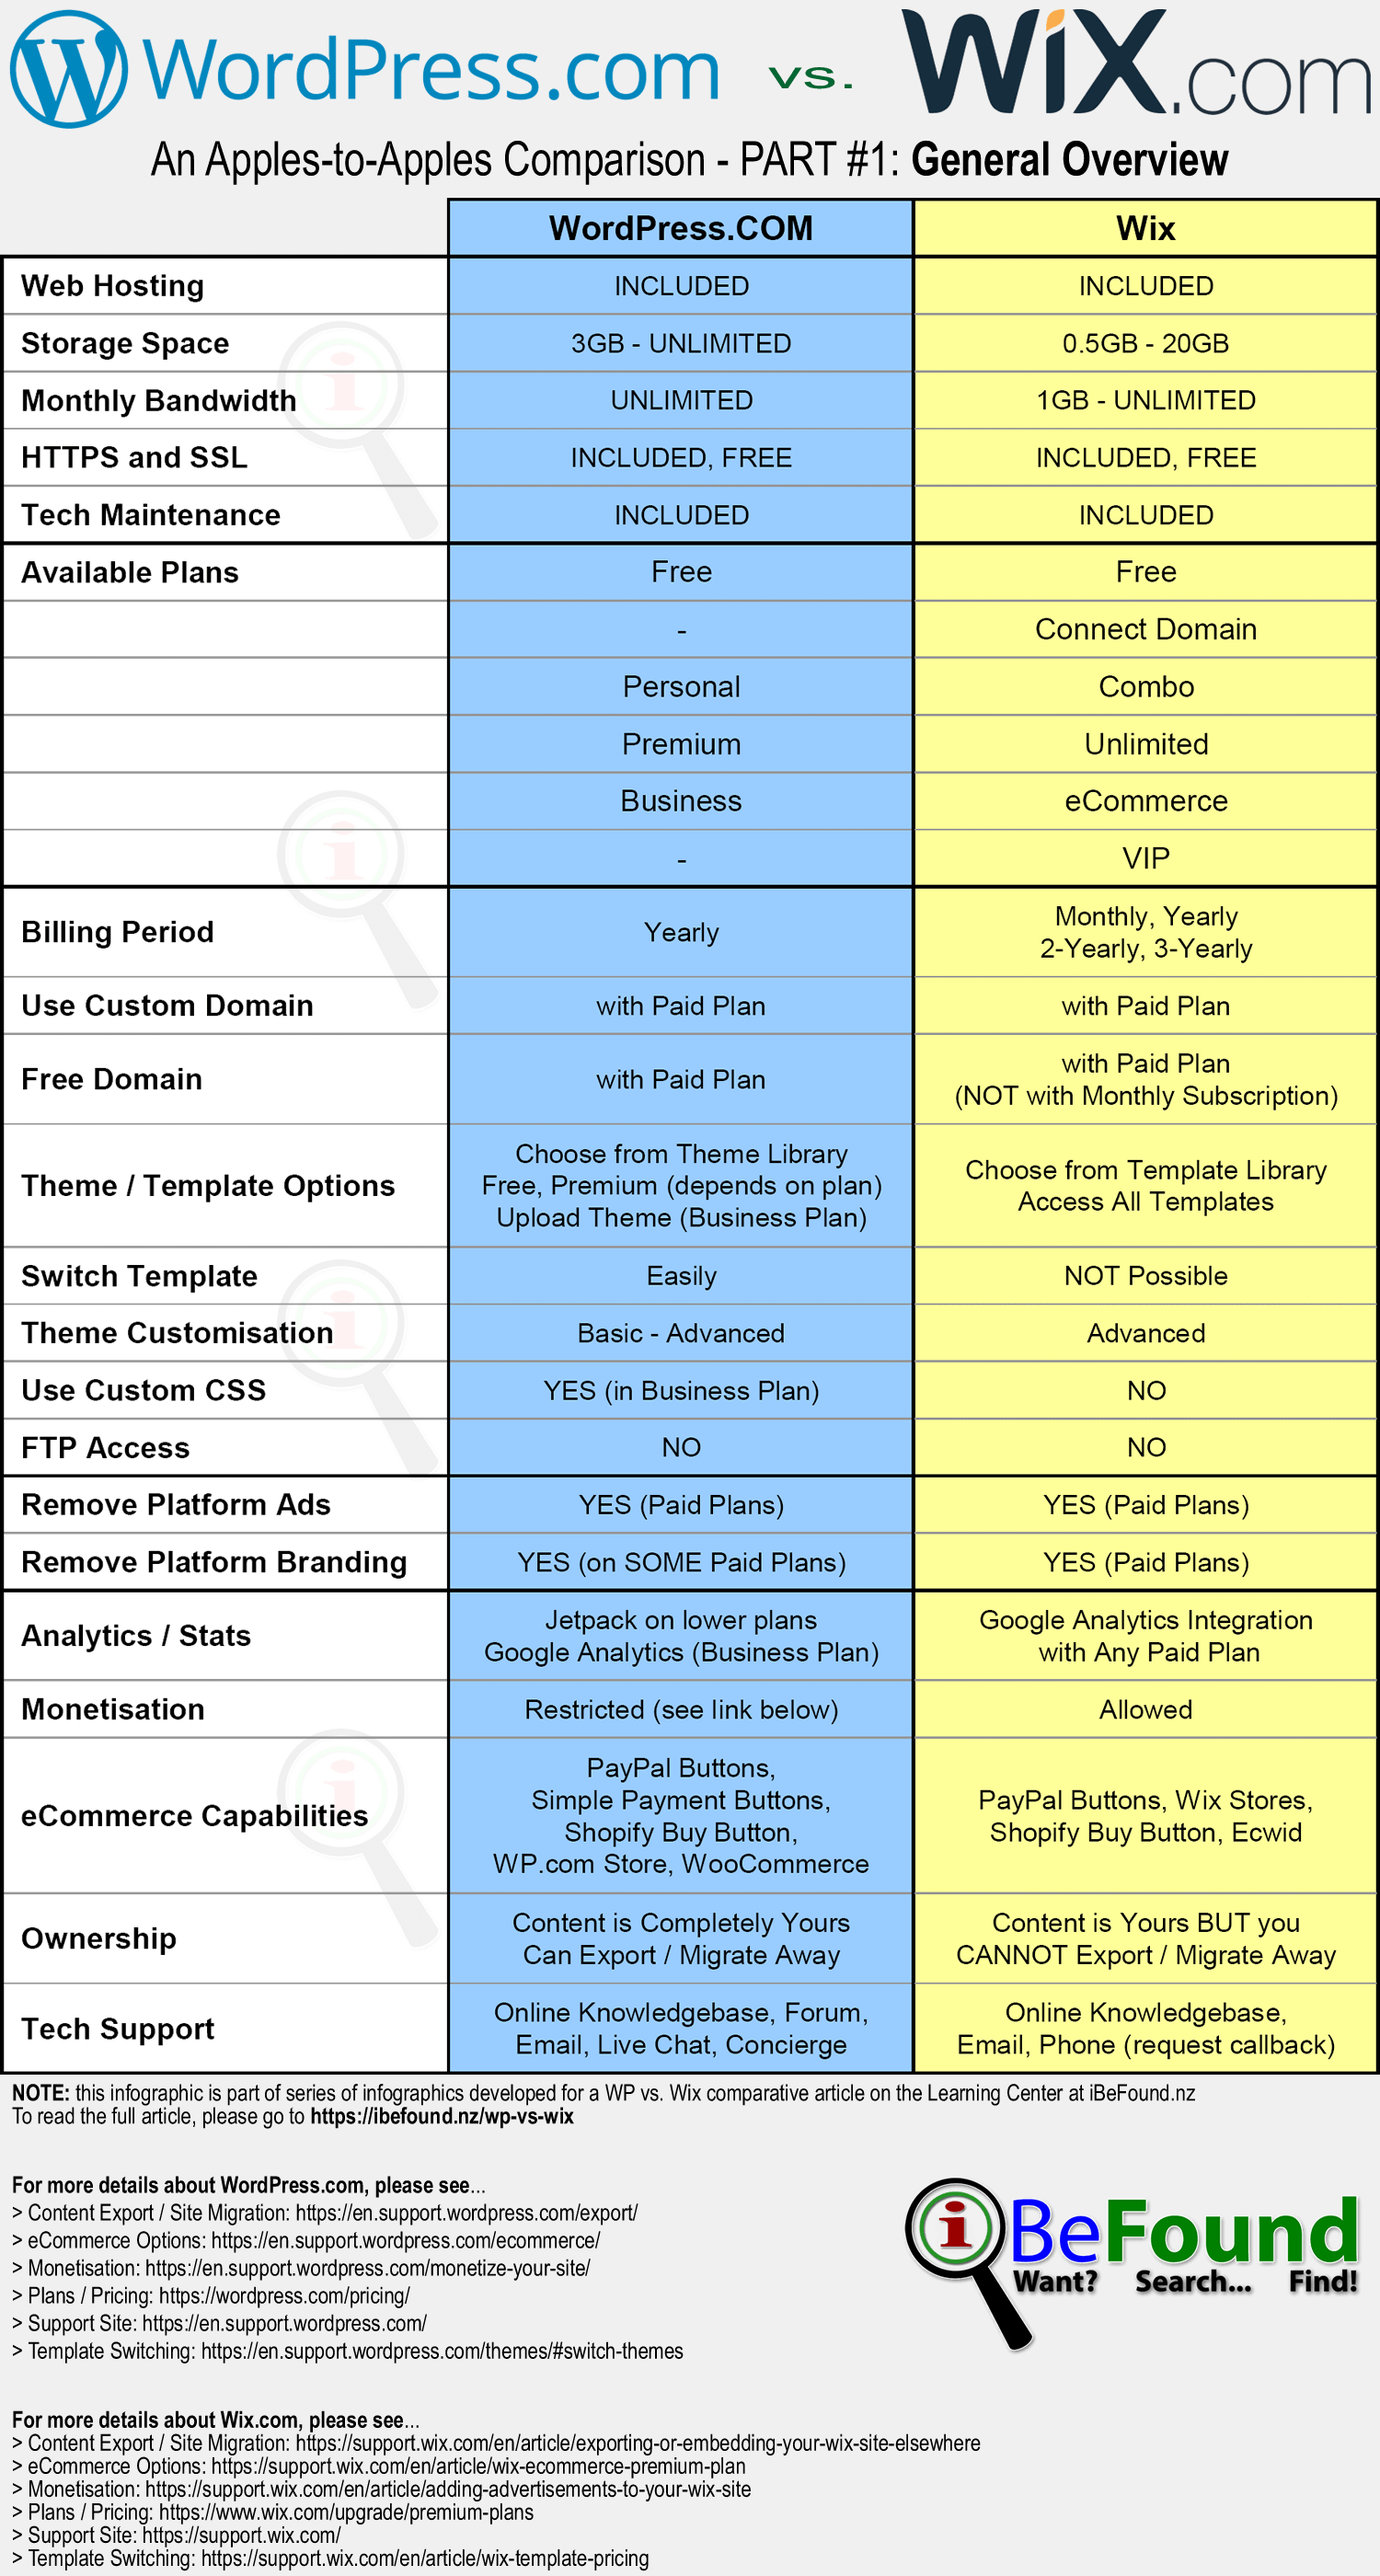 Hosted WordPress Versus Wix Comparison Infographic Pt1 Overview By iBeFound Digital Marketing Division